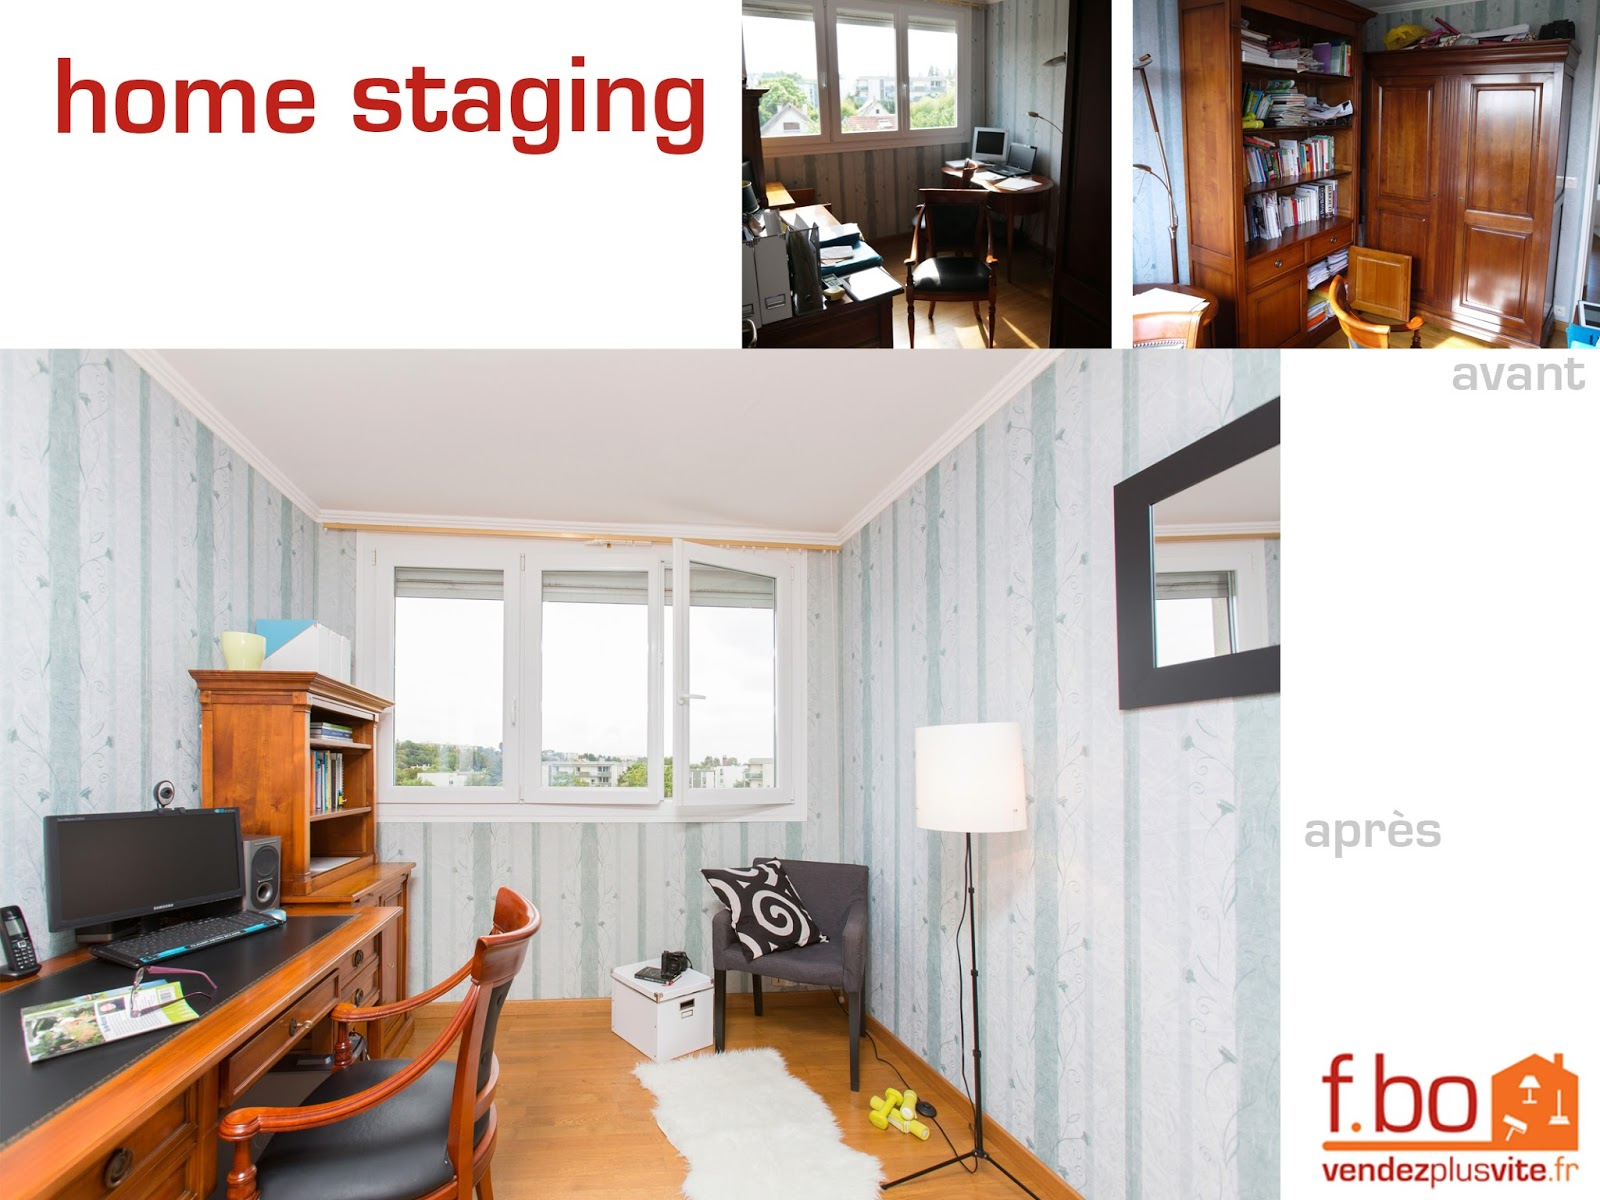 vendez plus vite votre bien des photos de home staging avant apr s. Black Bedroom Furniture Sets. Home Design Ideas